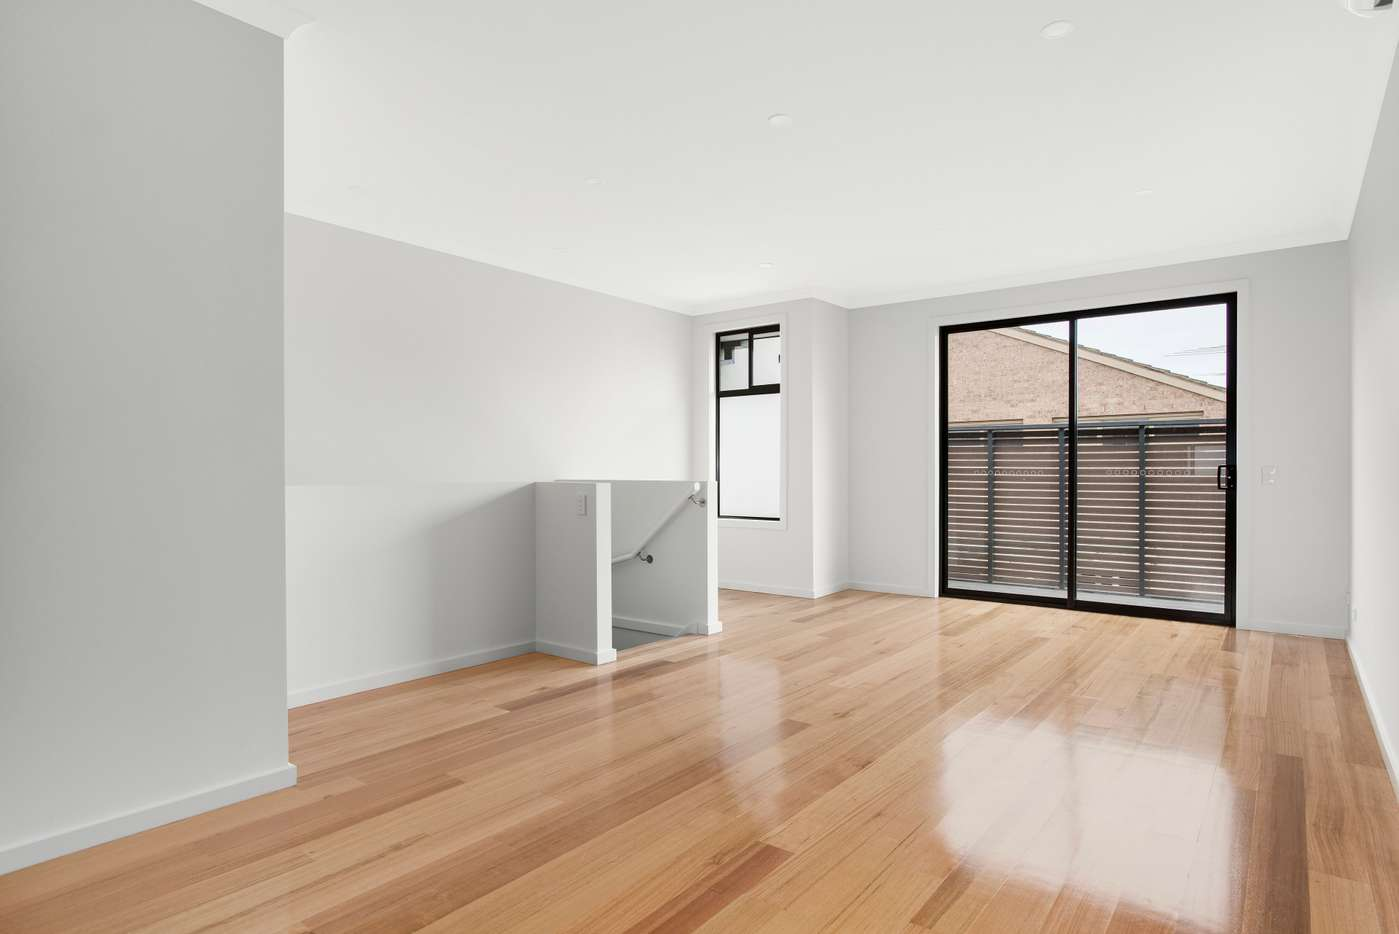 Main view of Homely townhouse listing, 2/31 Rothschild Street, Glen Huntly, VIC 3163